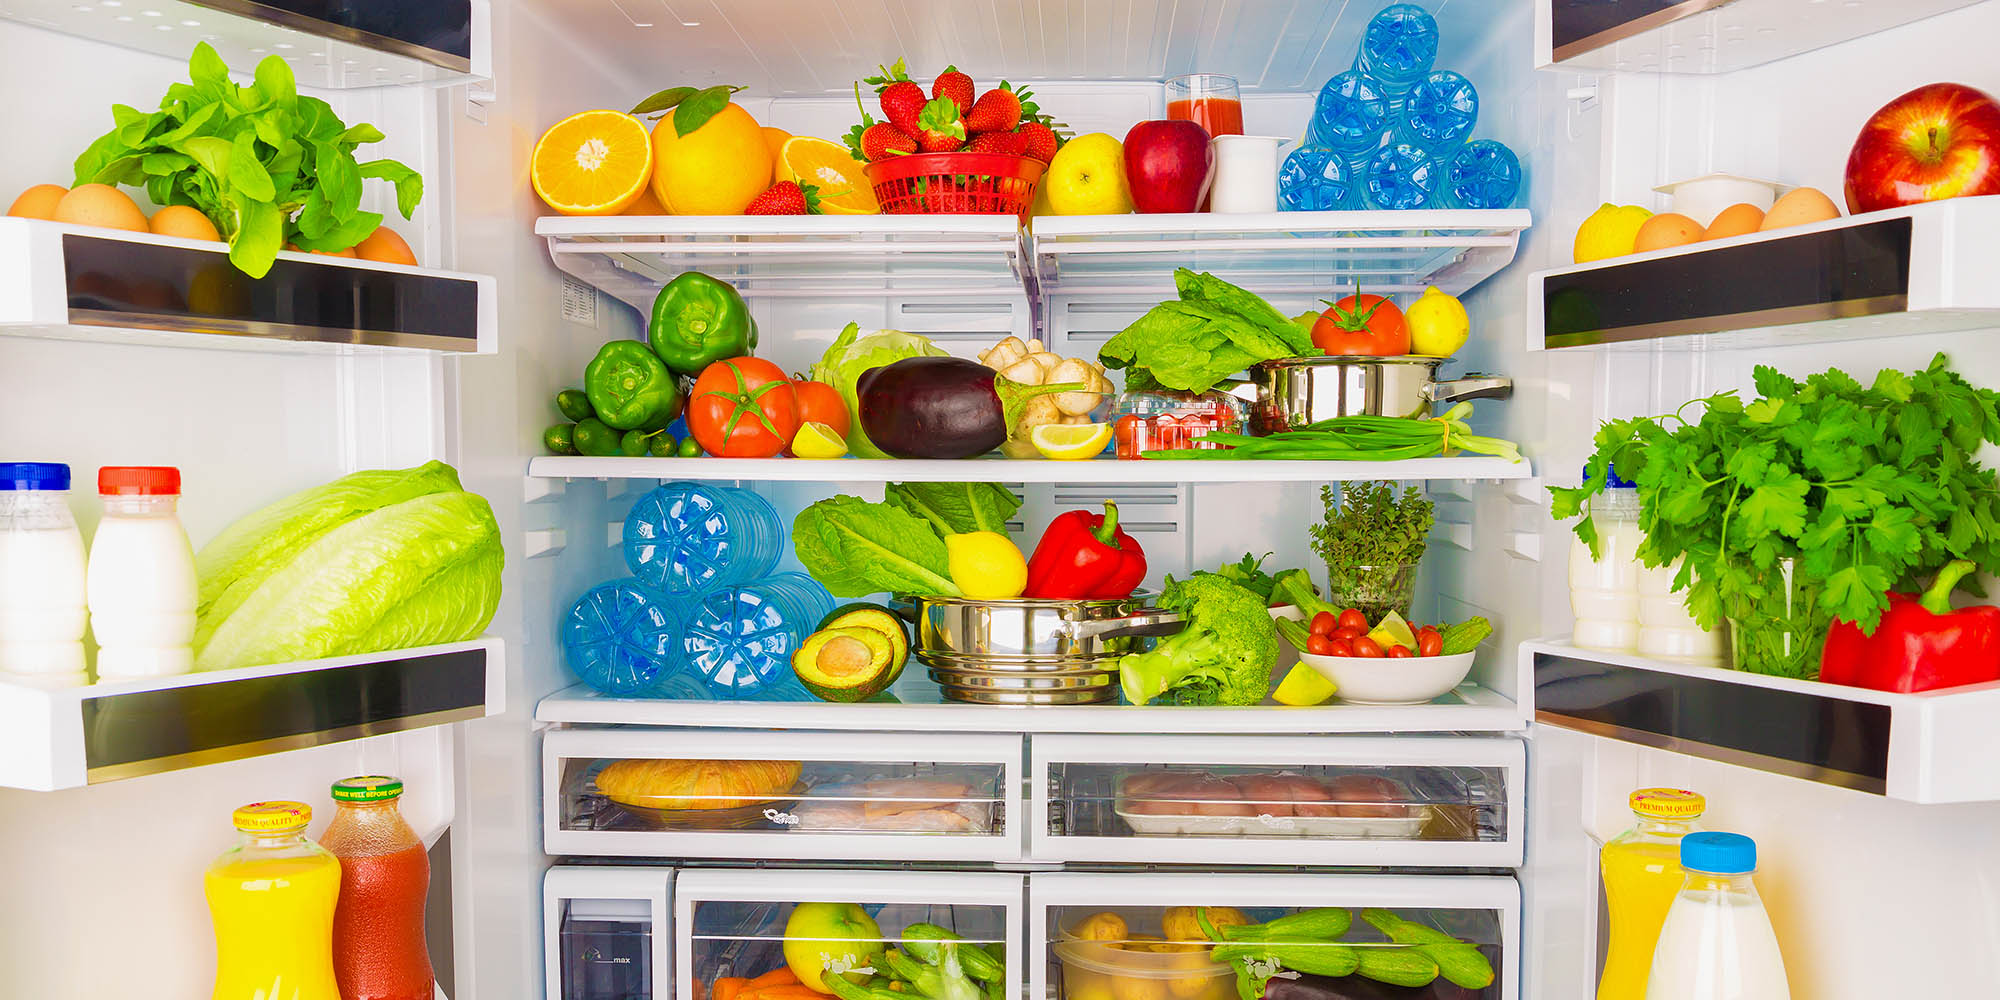 12 Food Storage Tips to Make Your Groceries Last Longer